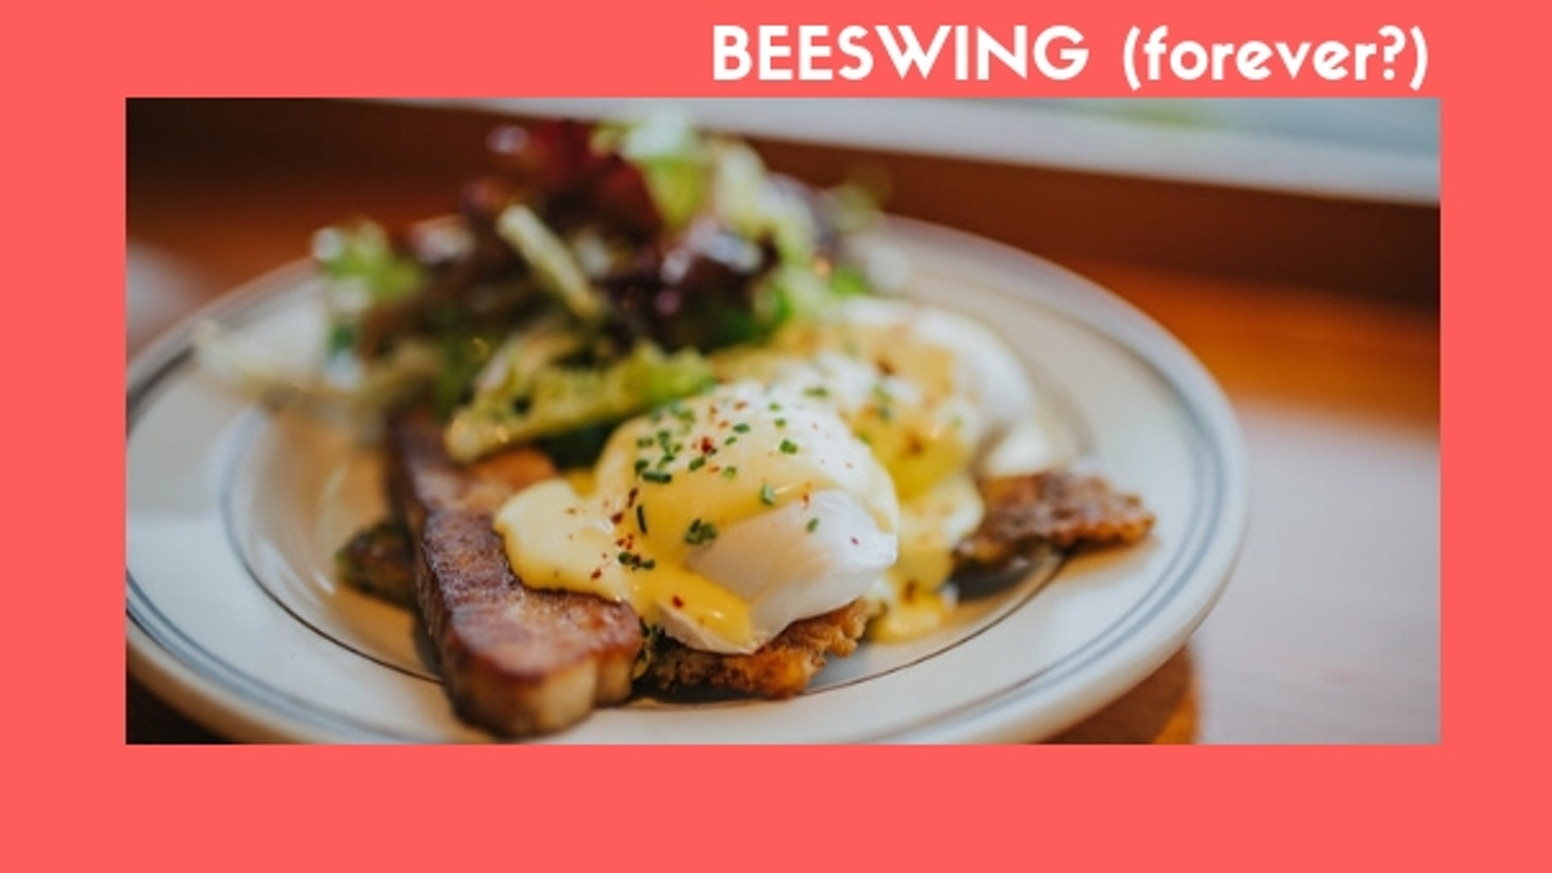 We are reopening Beeswing in a new location. Thank You for supporting us during this transistionand helping us keep our beloved restaurant cooking.